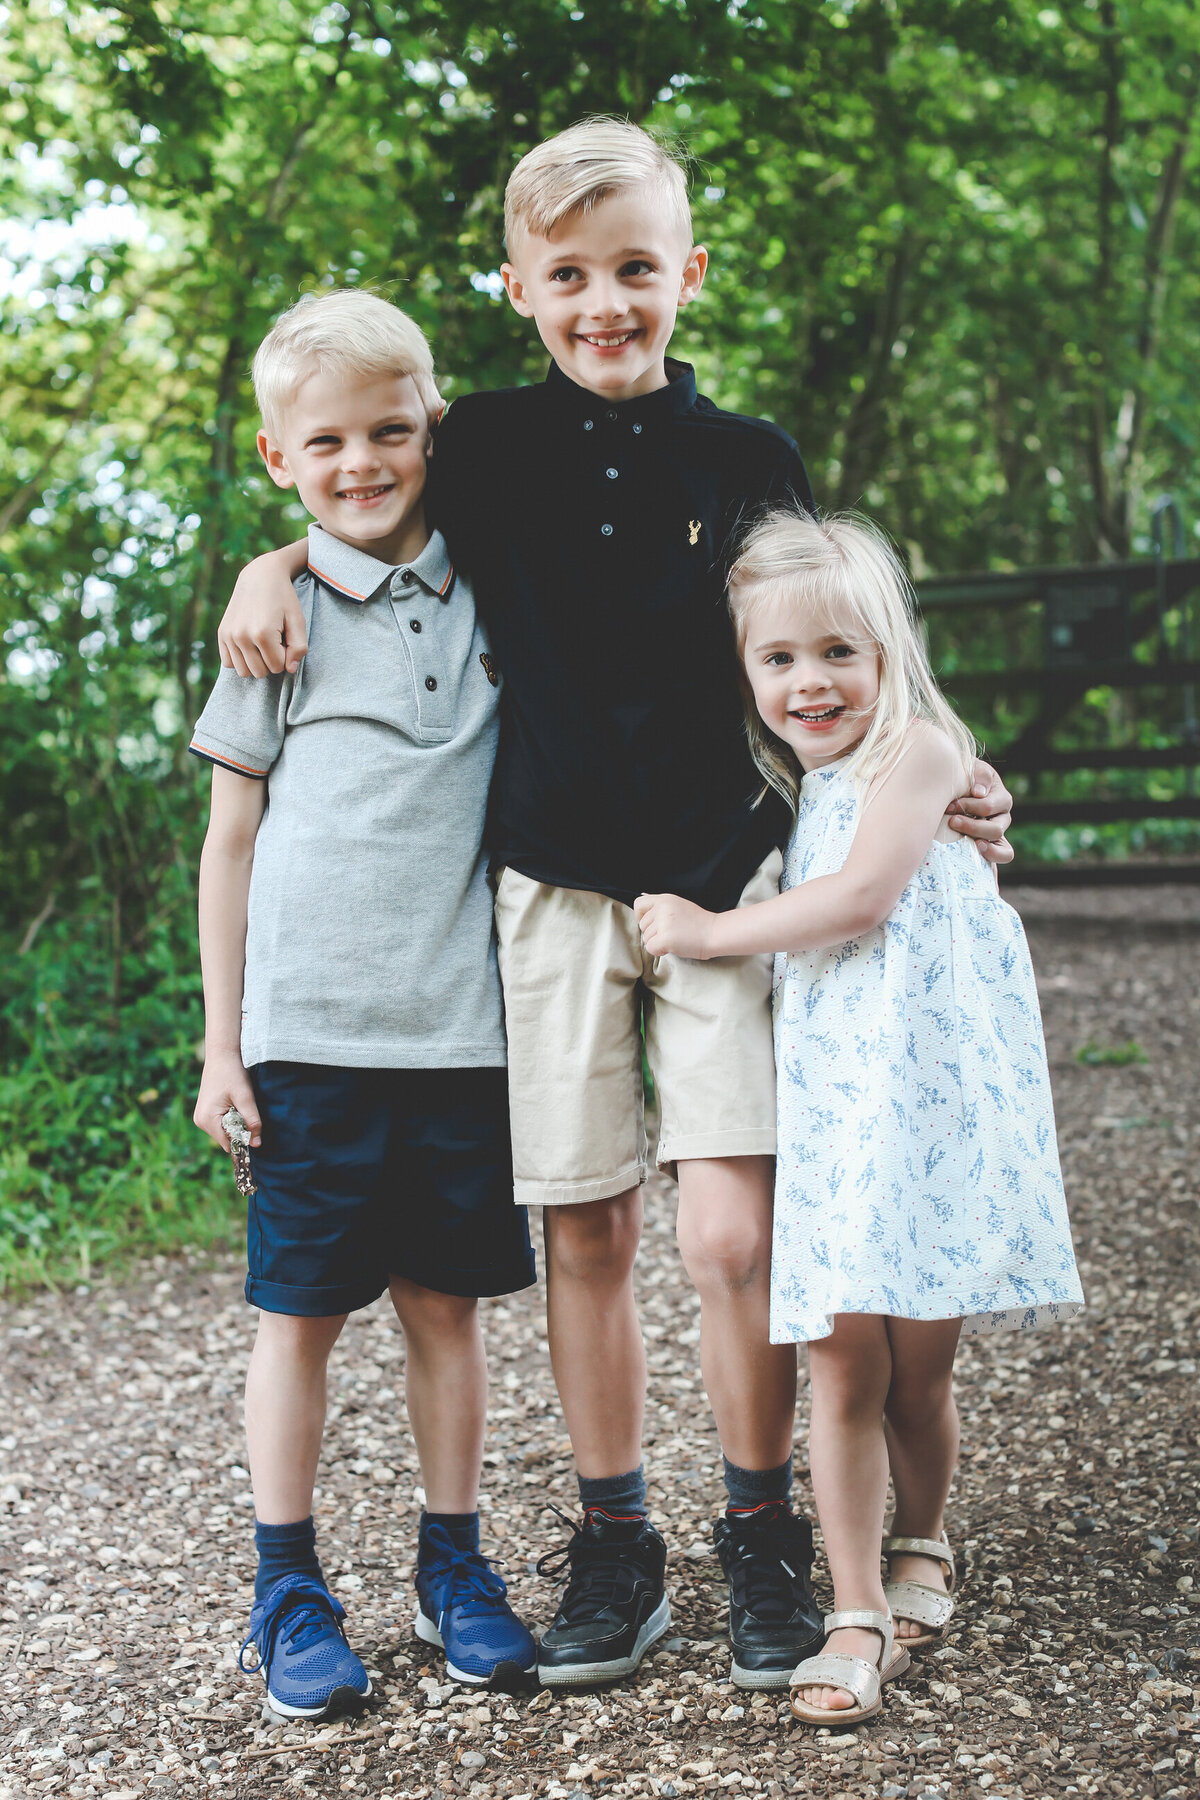 FAMILY_FEATURED_DUKES_HANNAH_MACGREGOR_FAMILY_PHOTOGRAPHER_0009